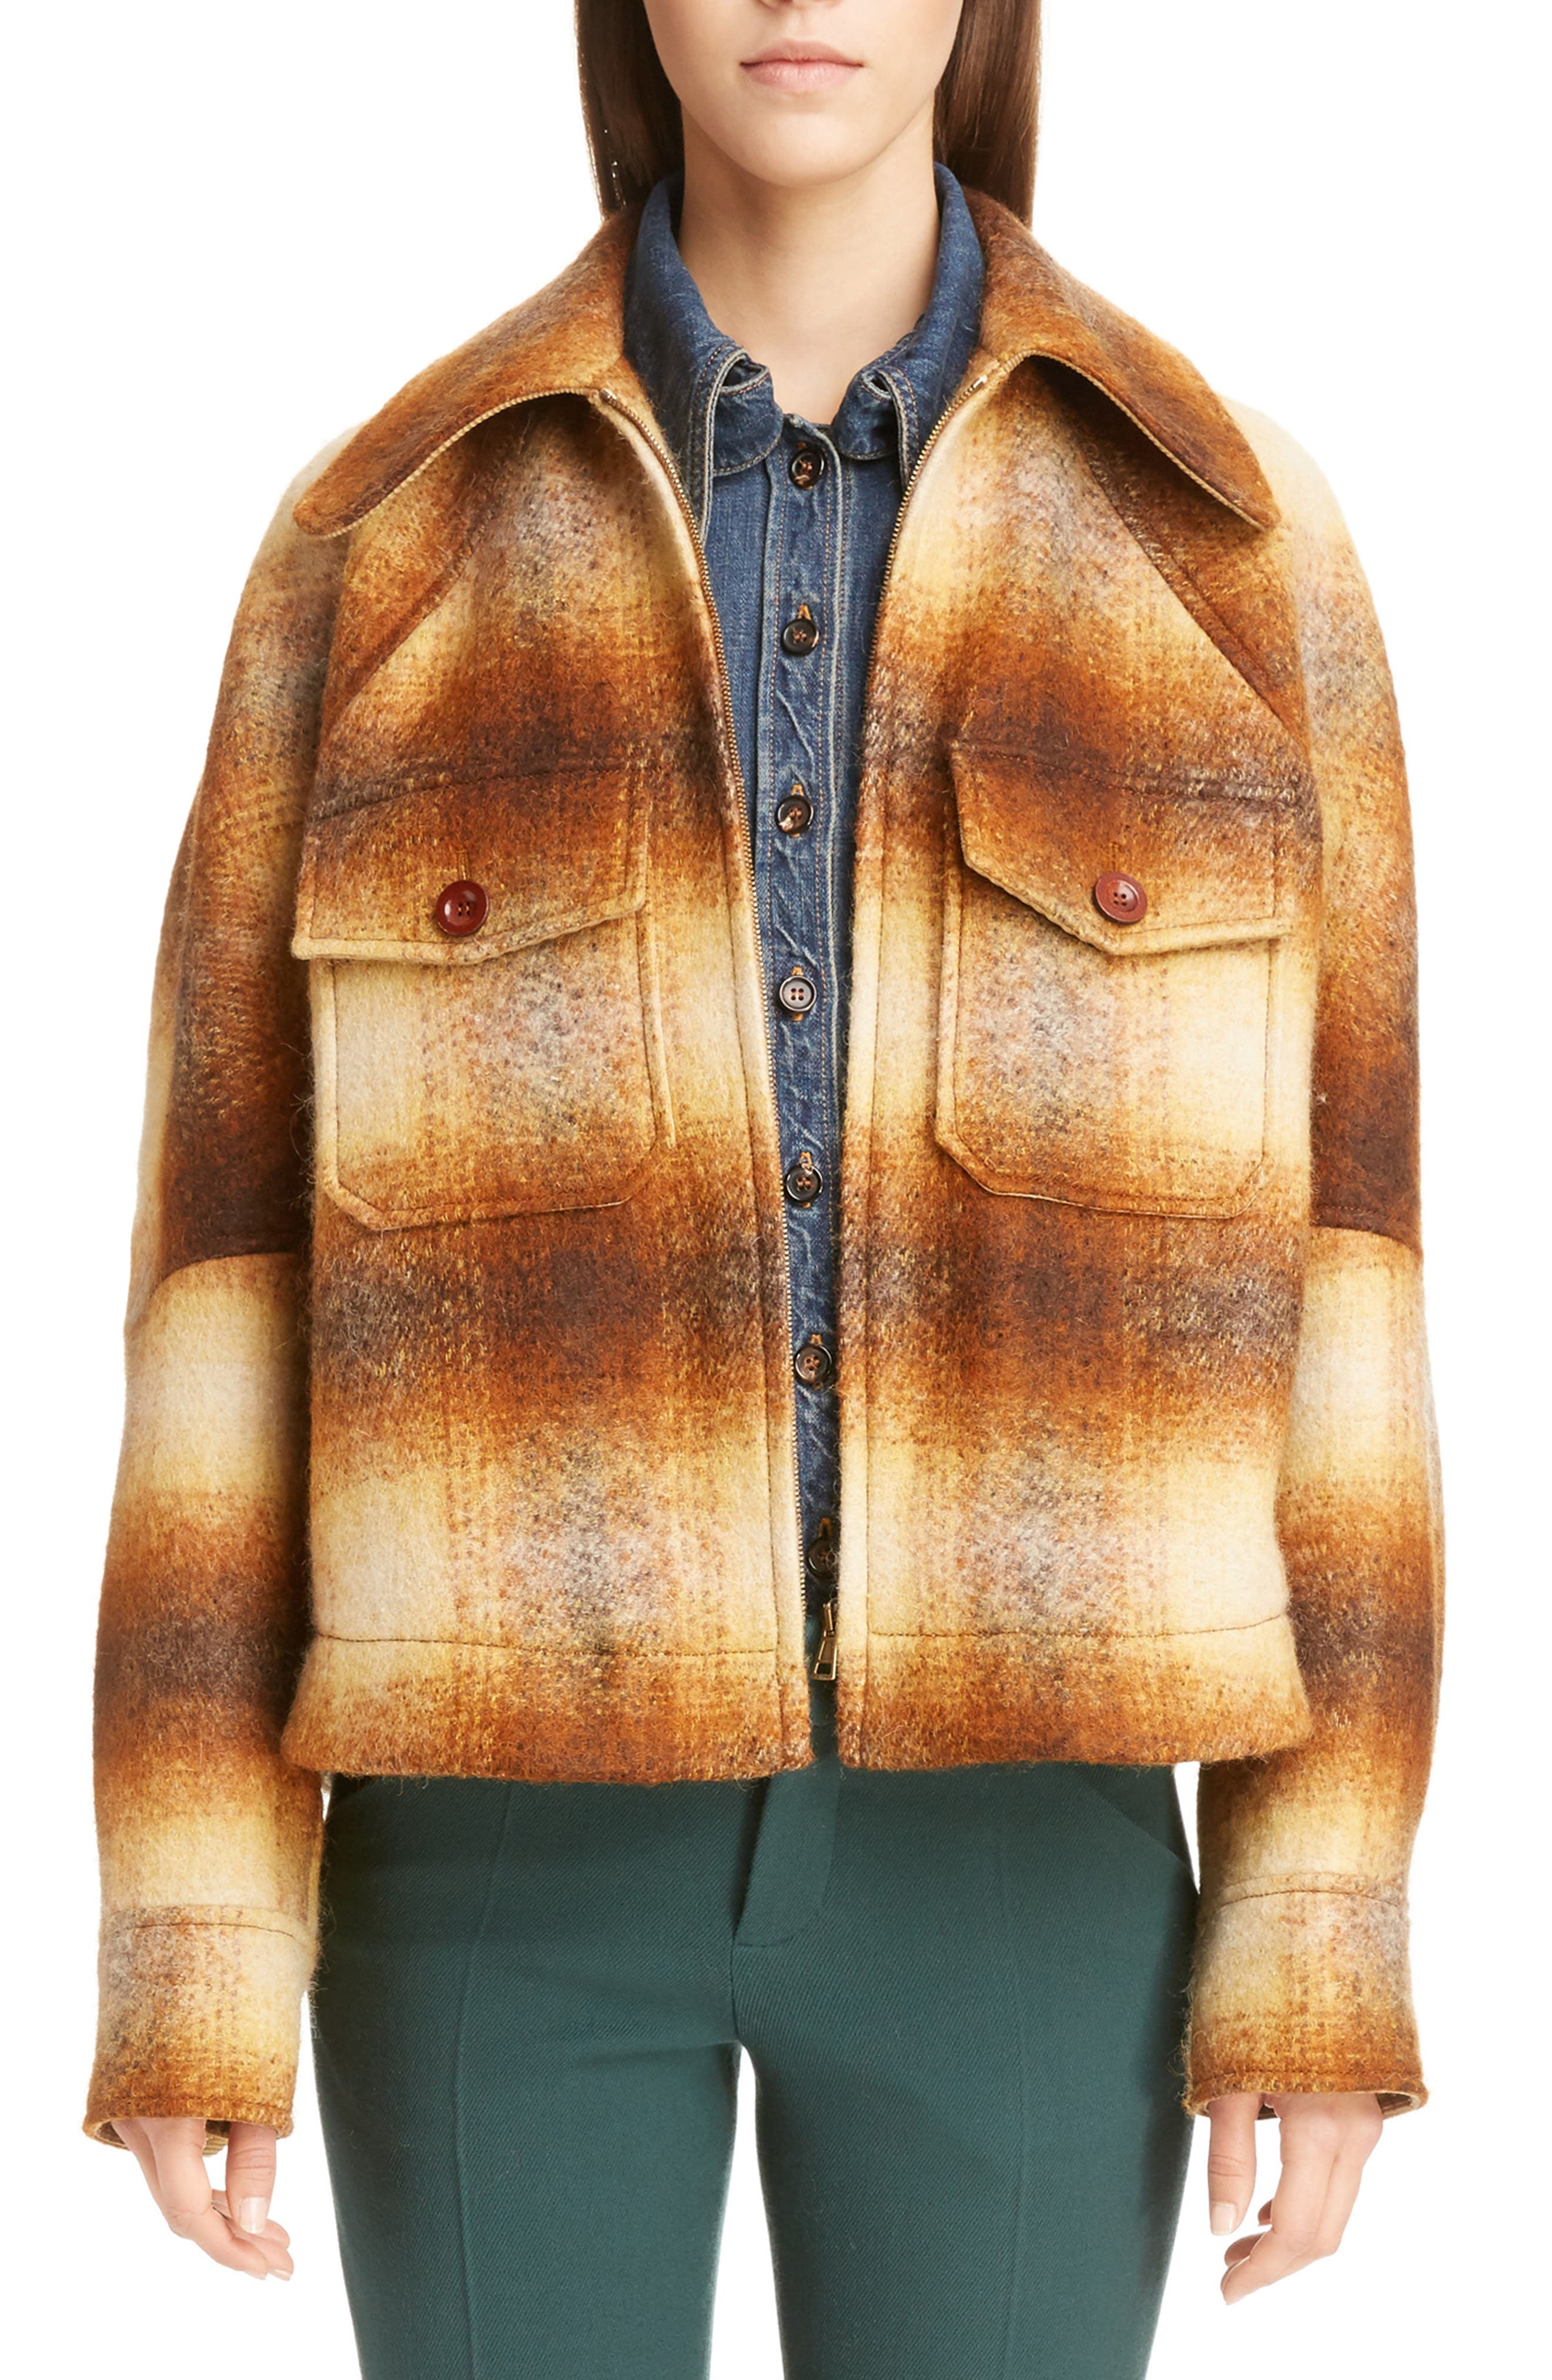 Mohair Blend Check Lumber Jacket,                             Main thumbnail 1, color,                             Multicolor Brown